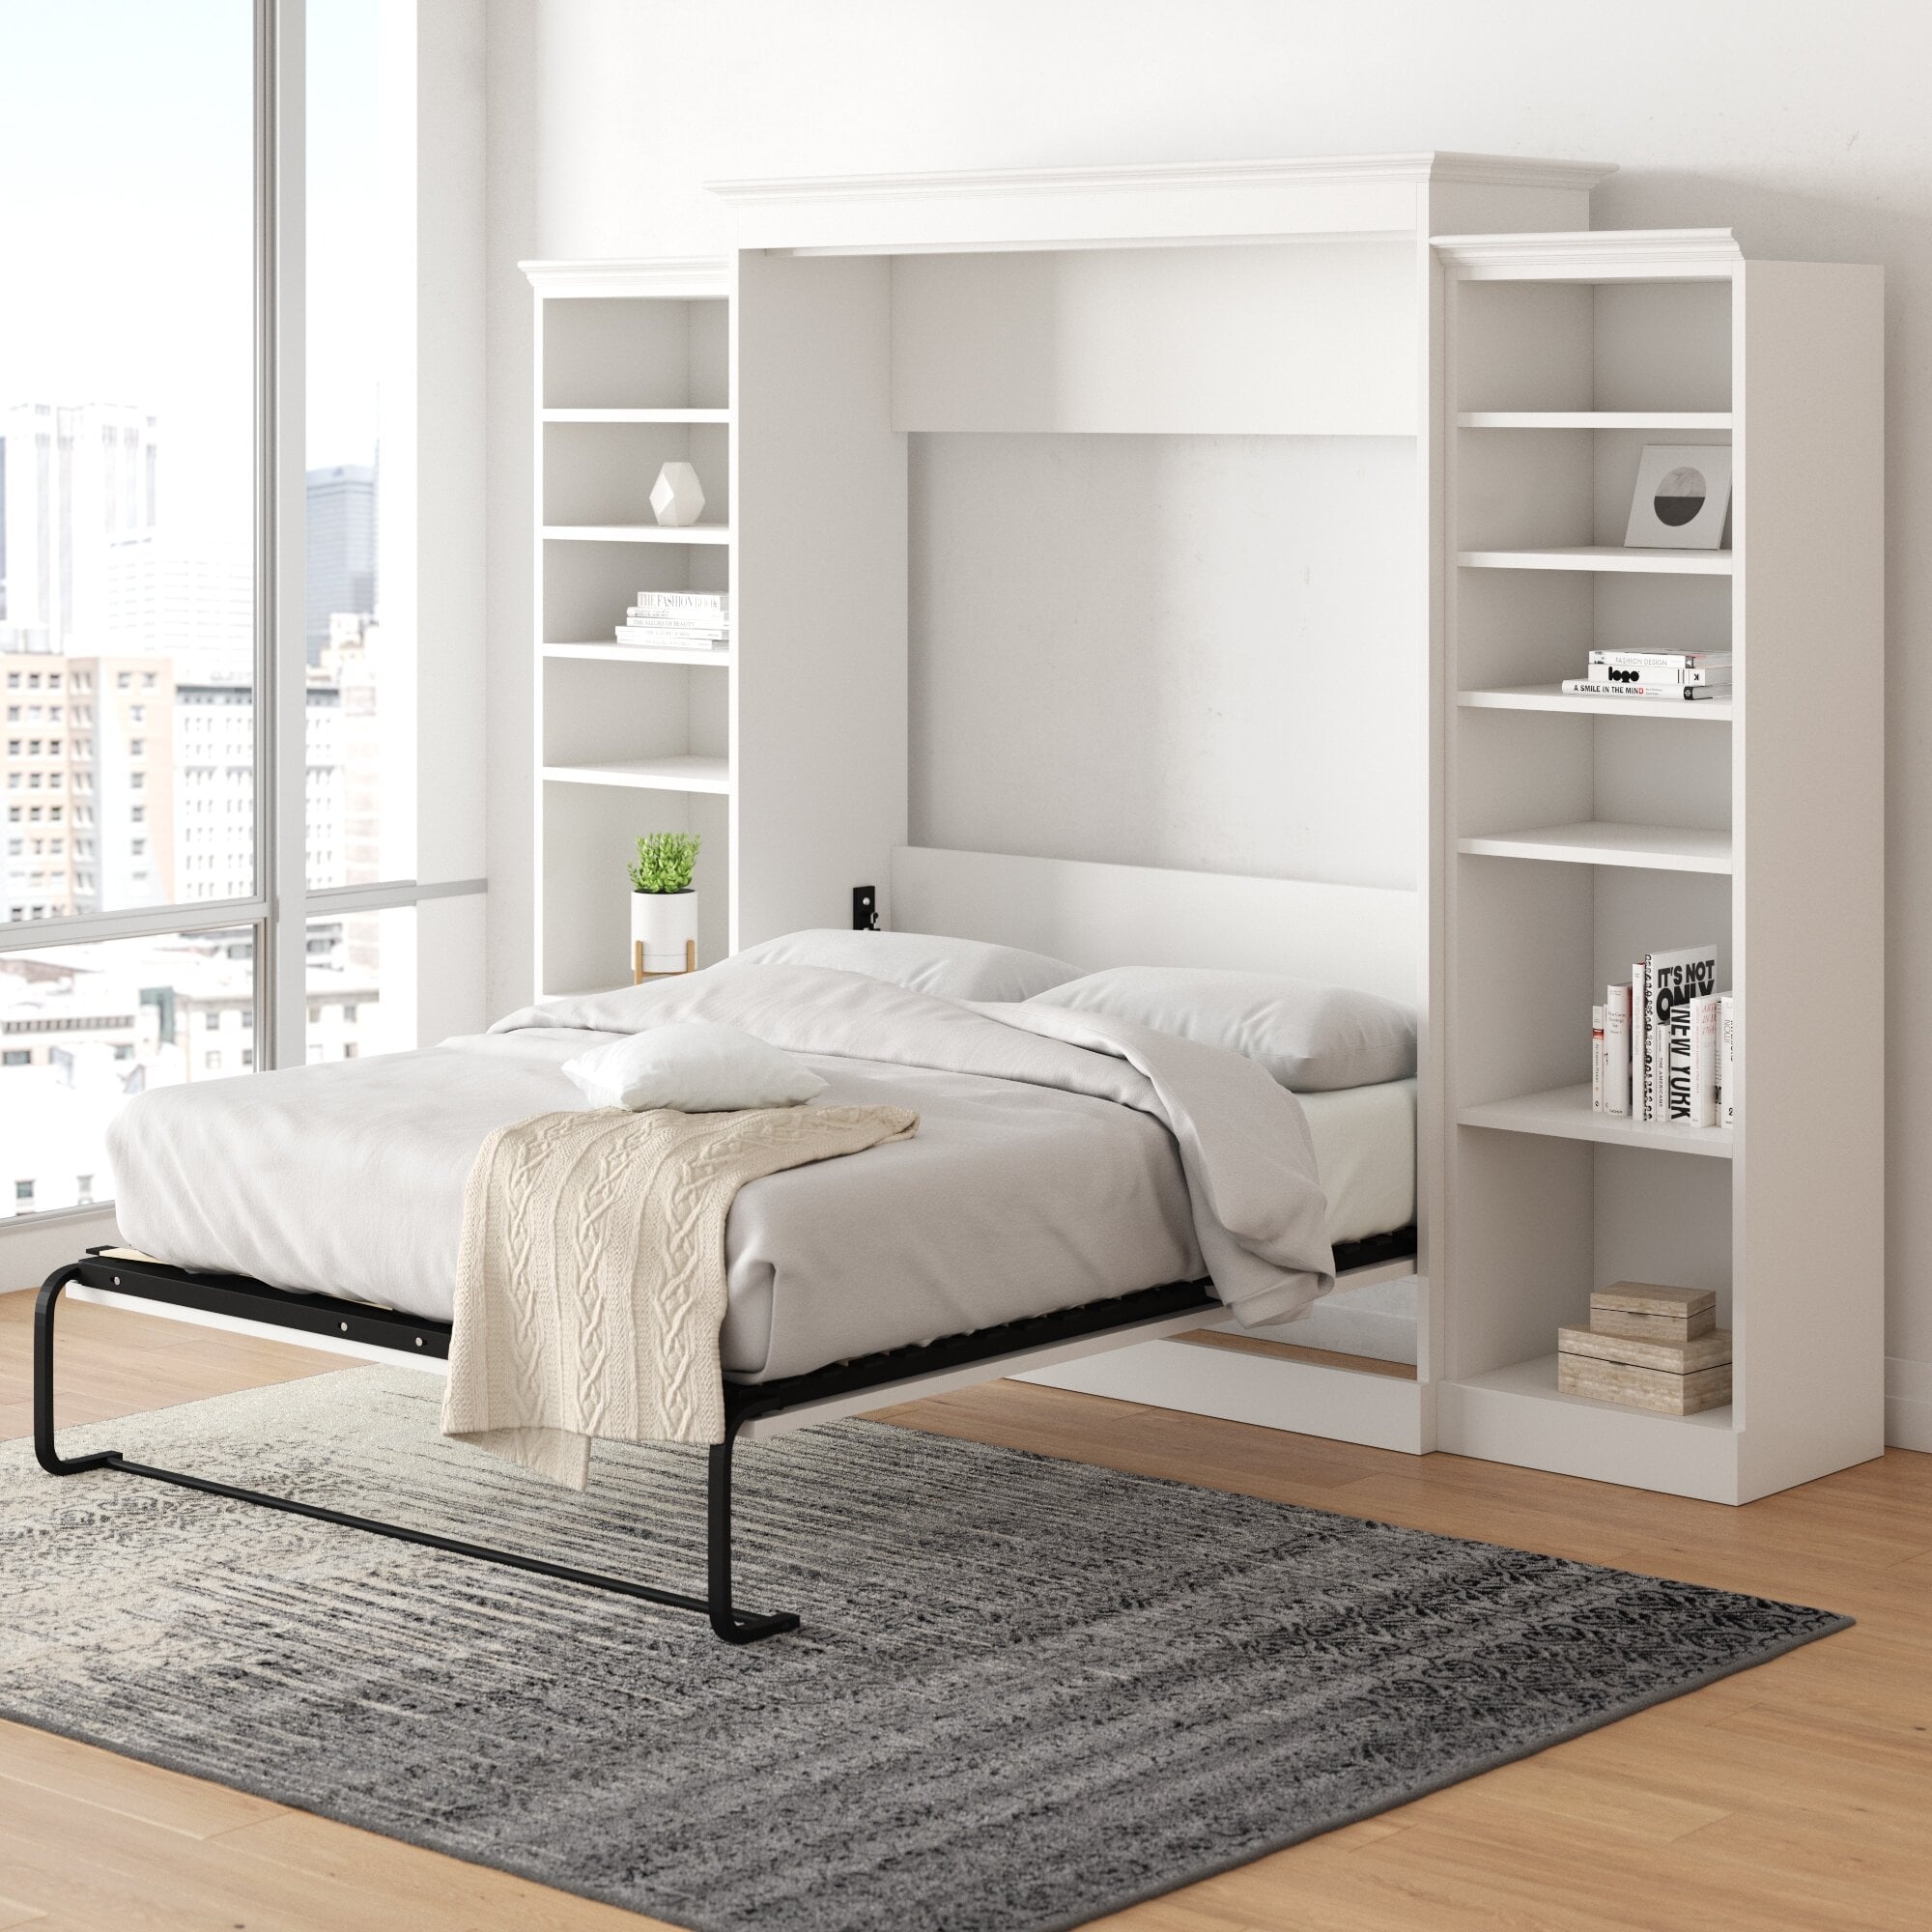 Best Beds For Small Spaces and Rooms  POPSUGAR Home Australia